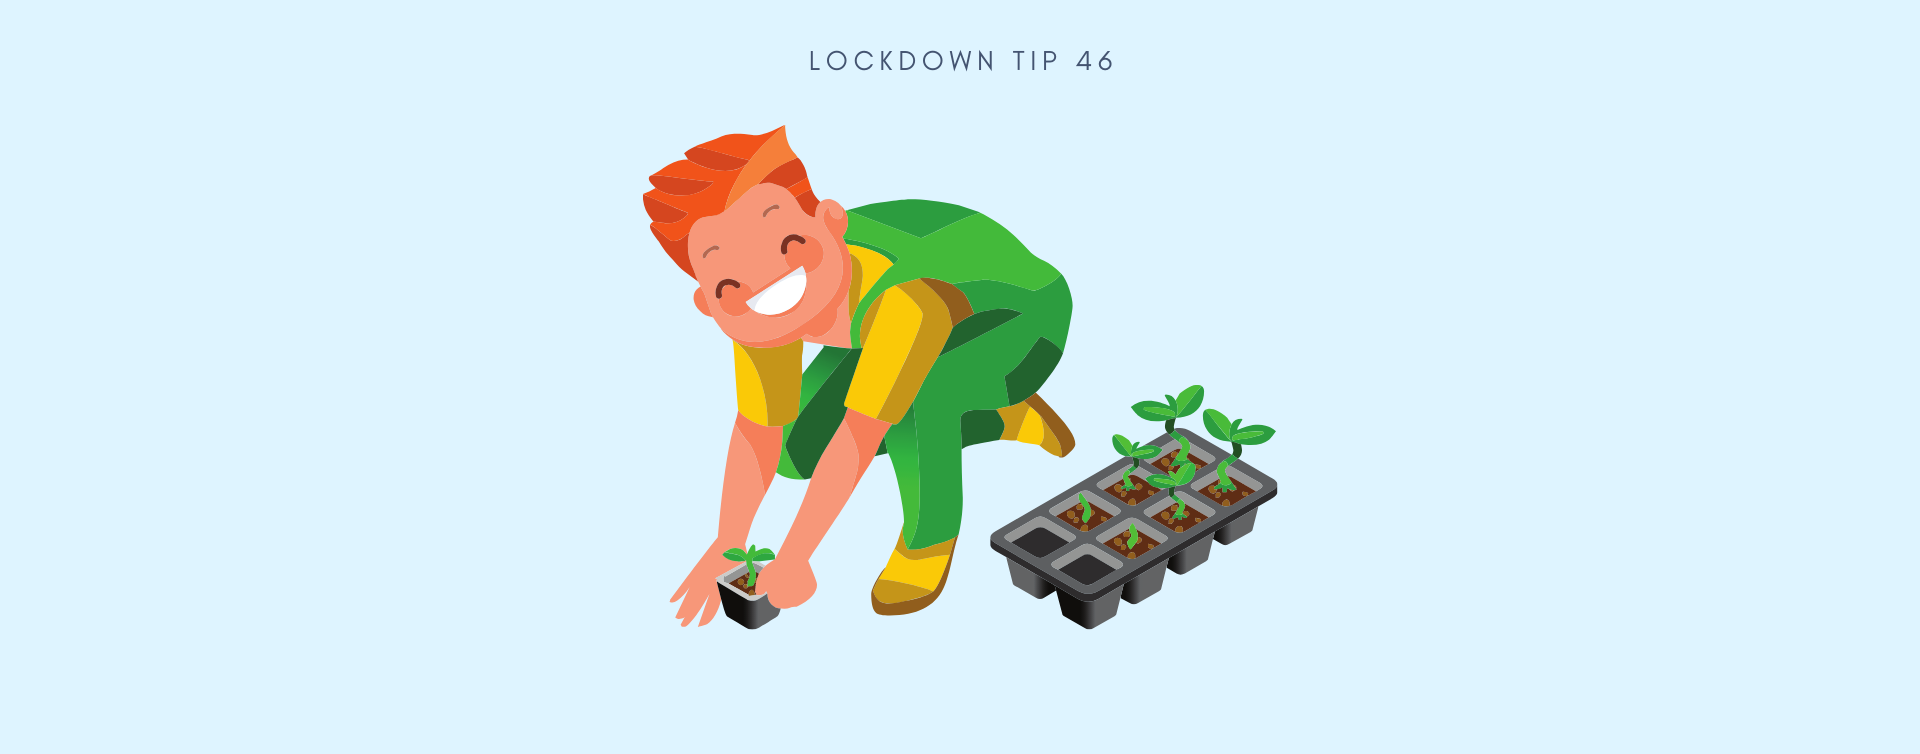 MCSA Lockdown Tip 46